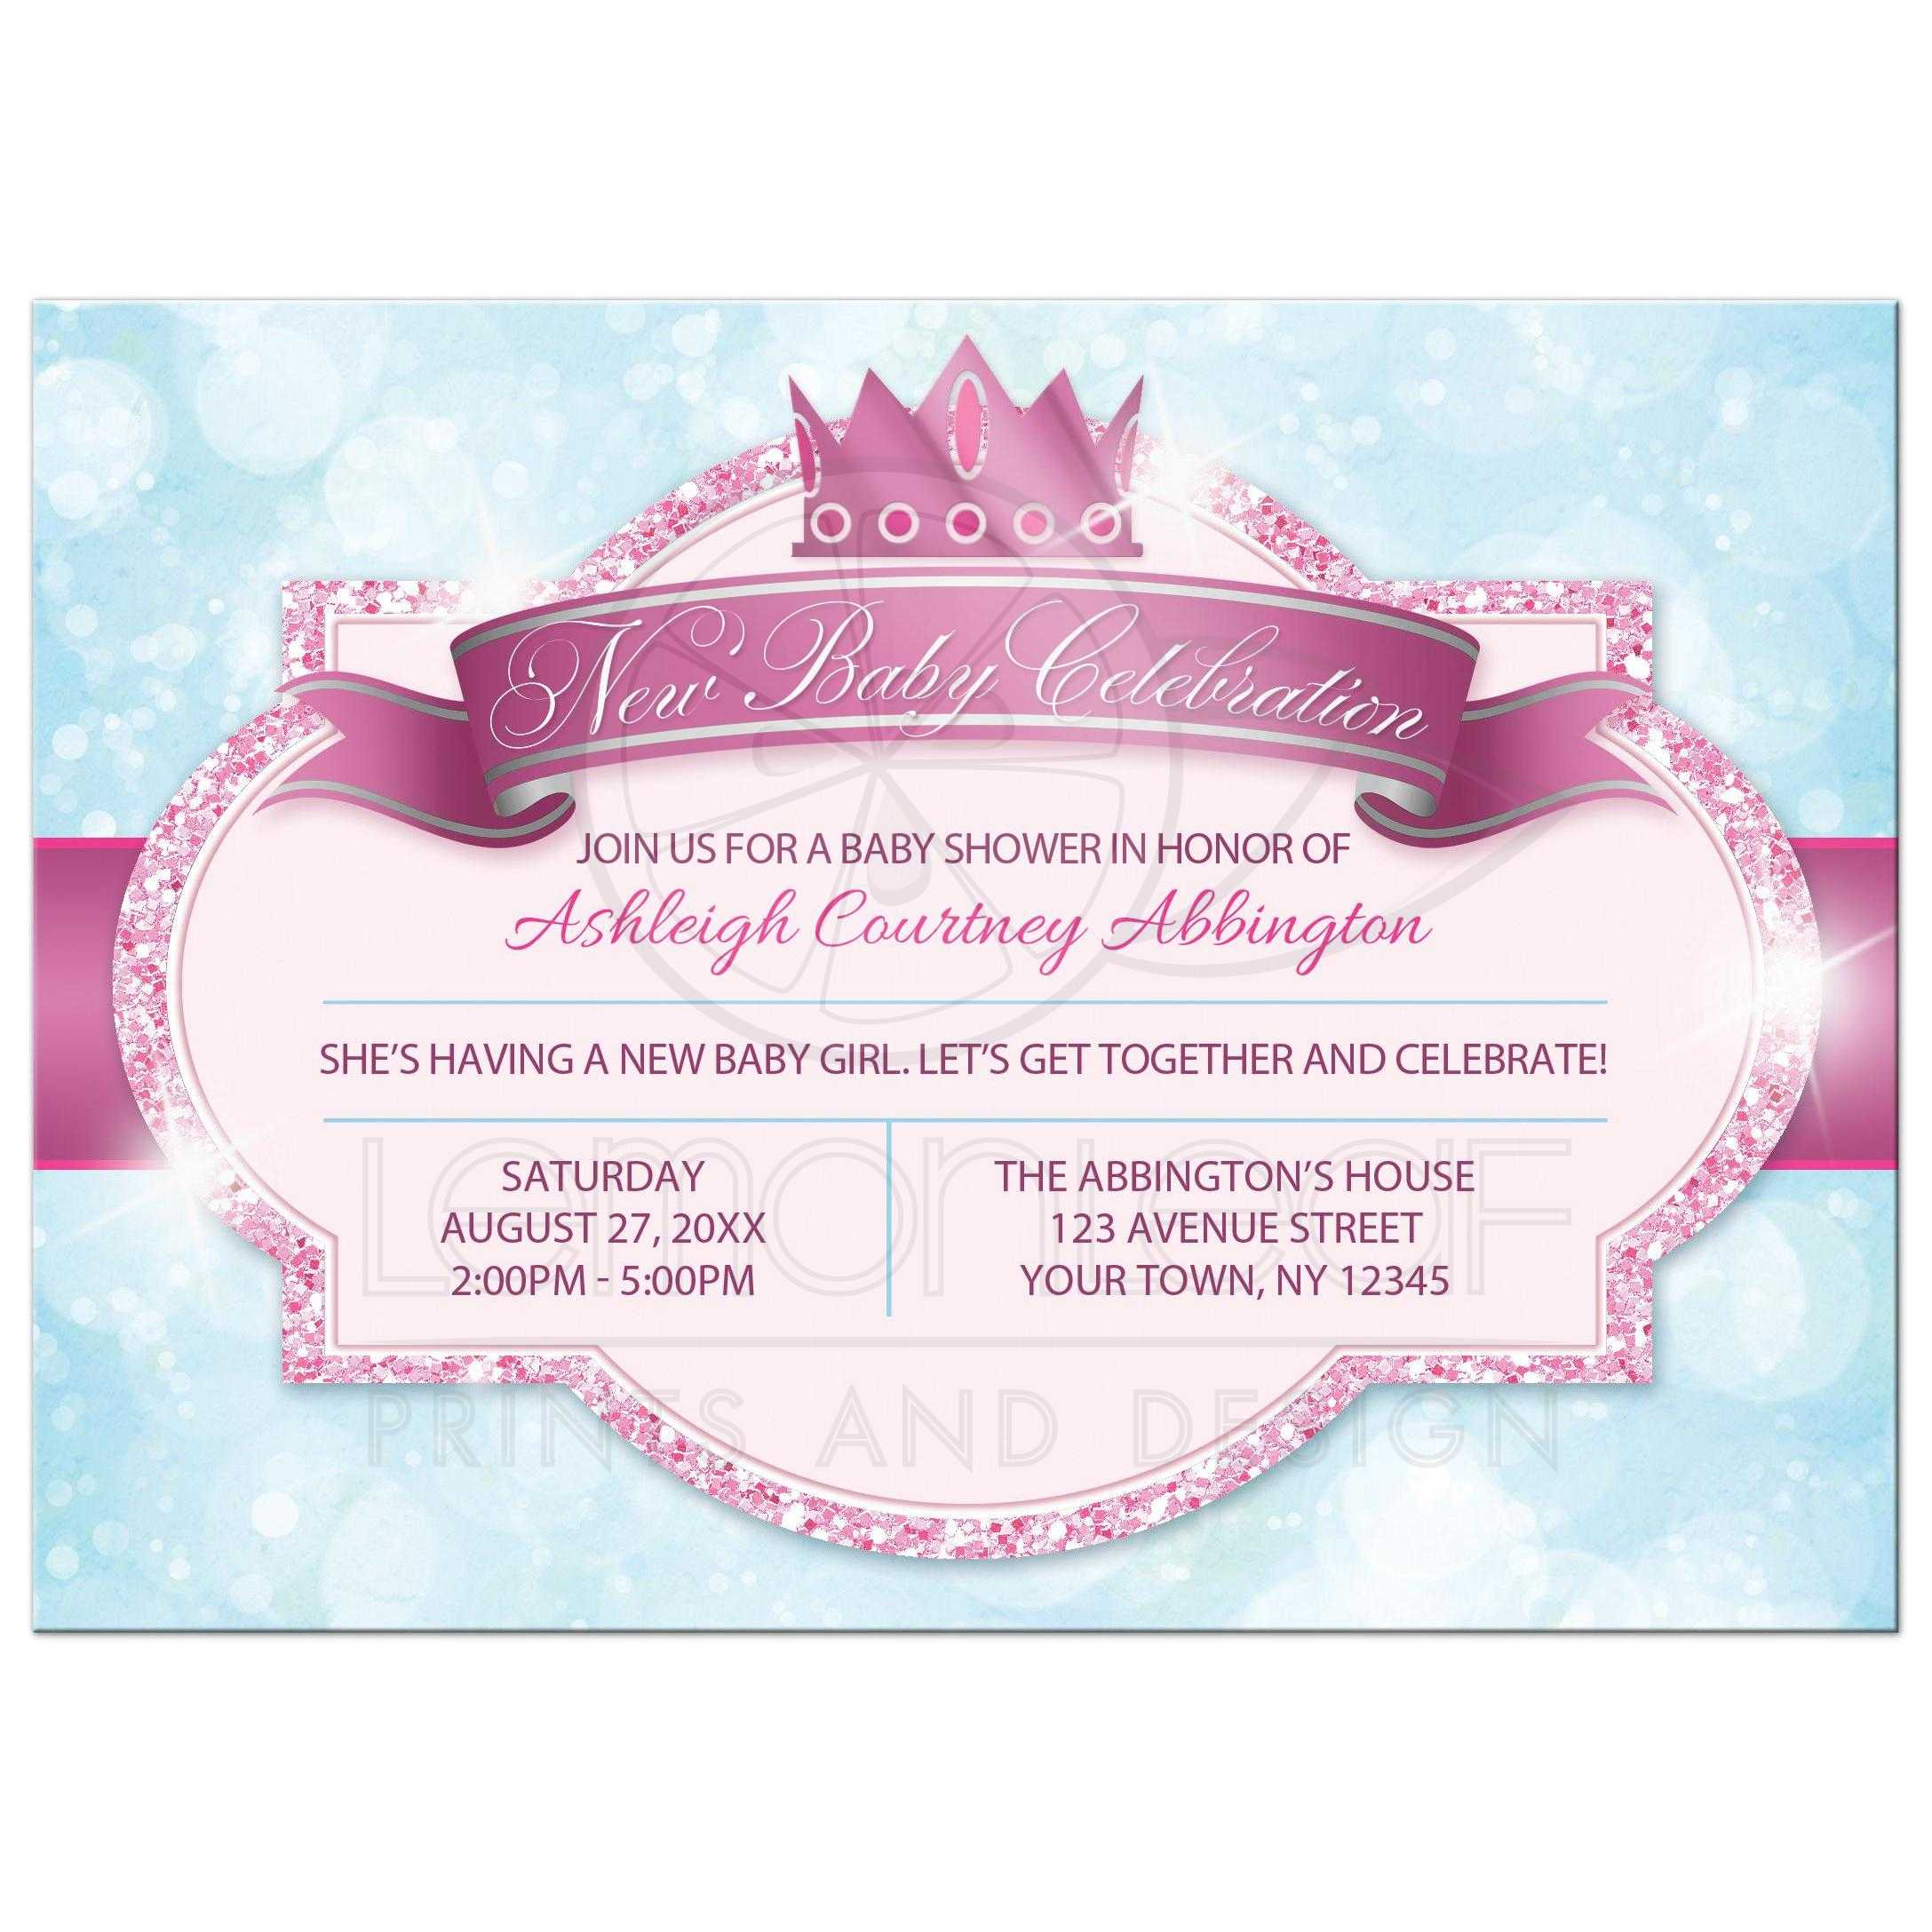 Invitations Quinceanera as luxury invitation design